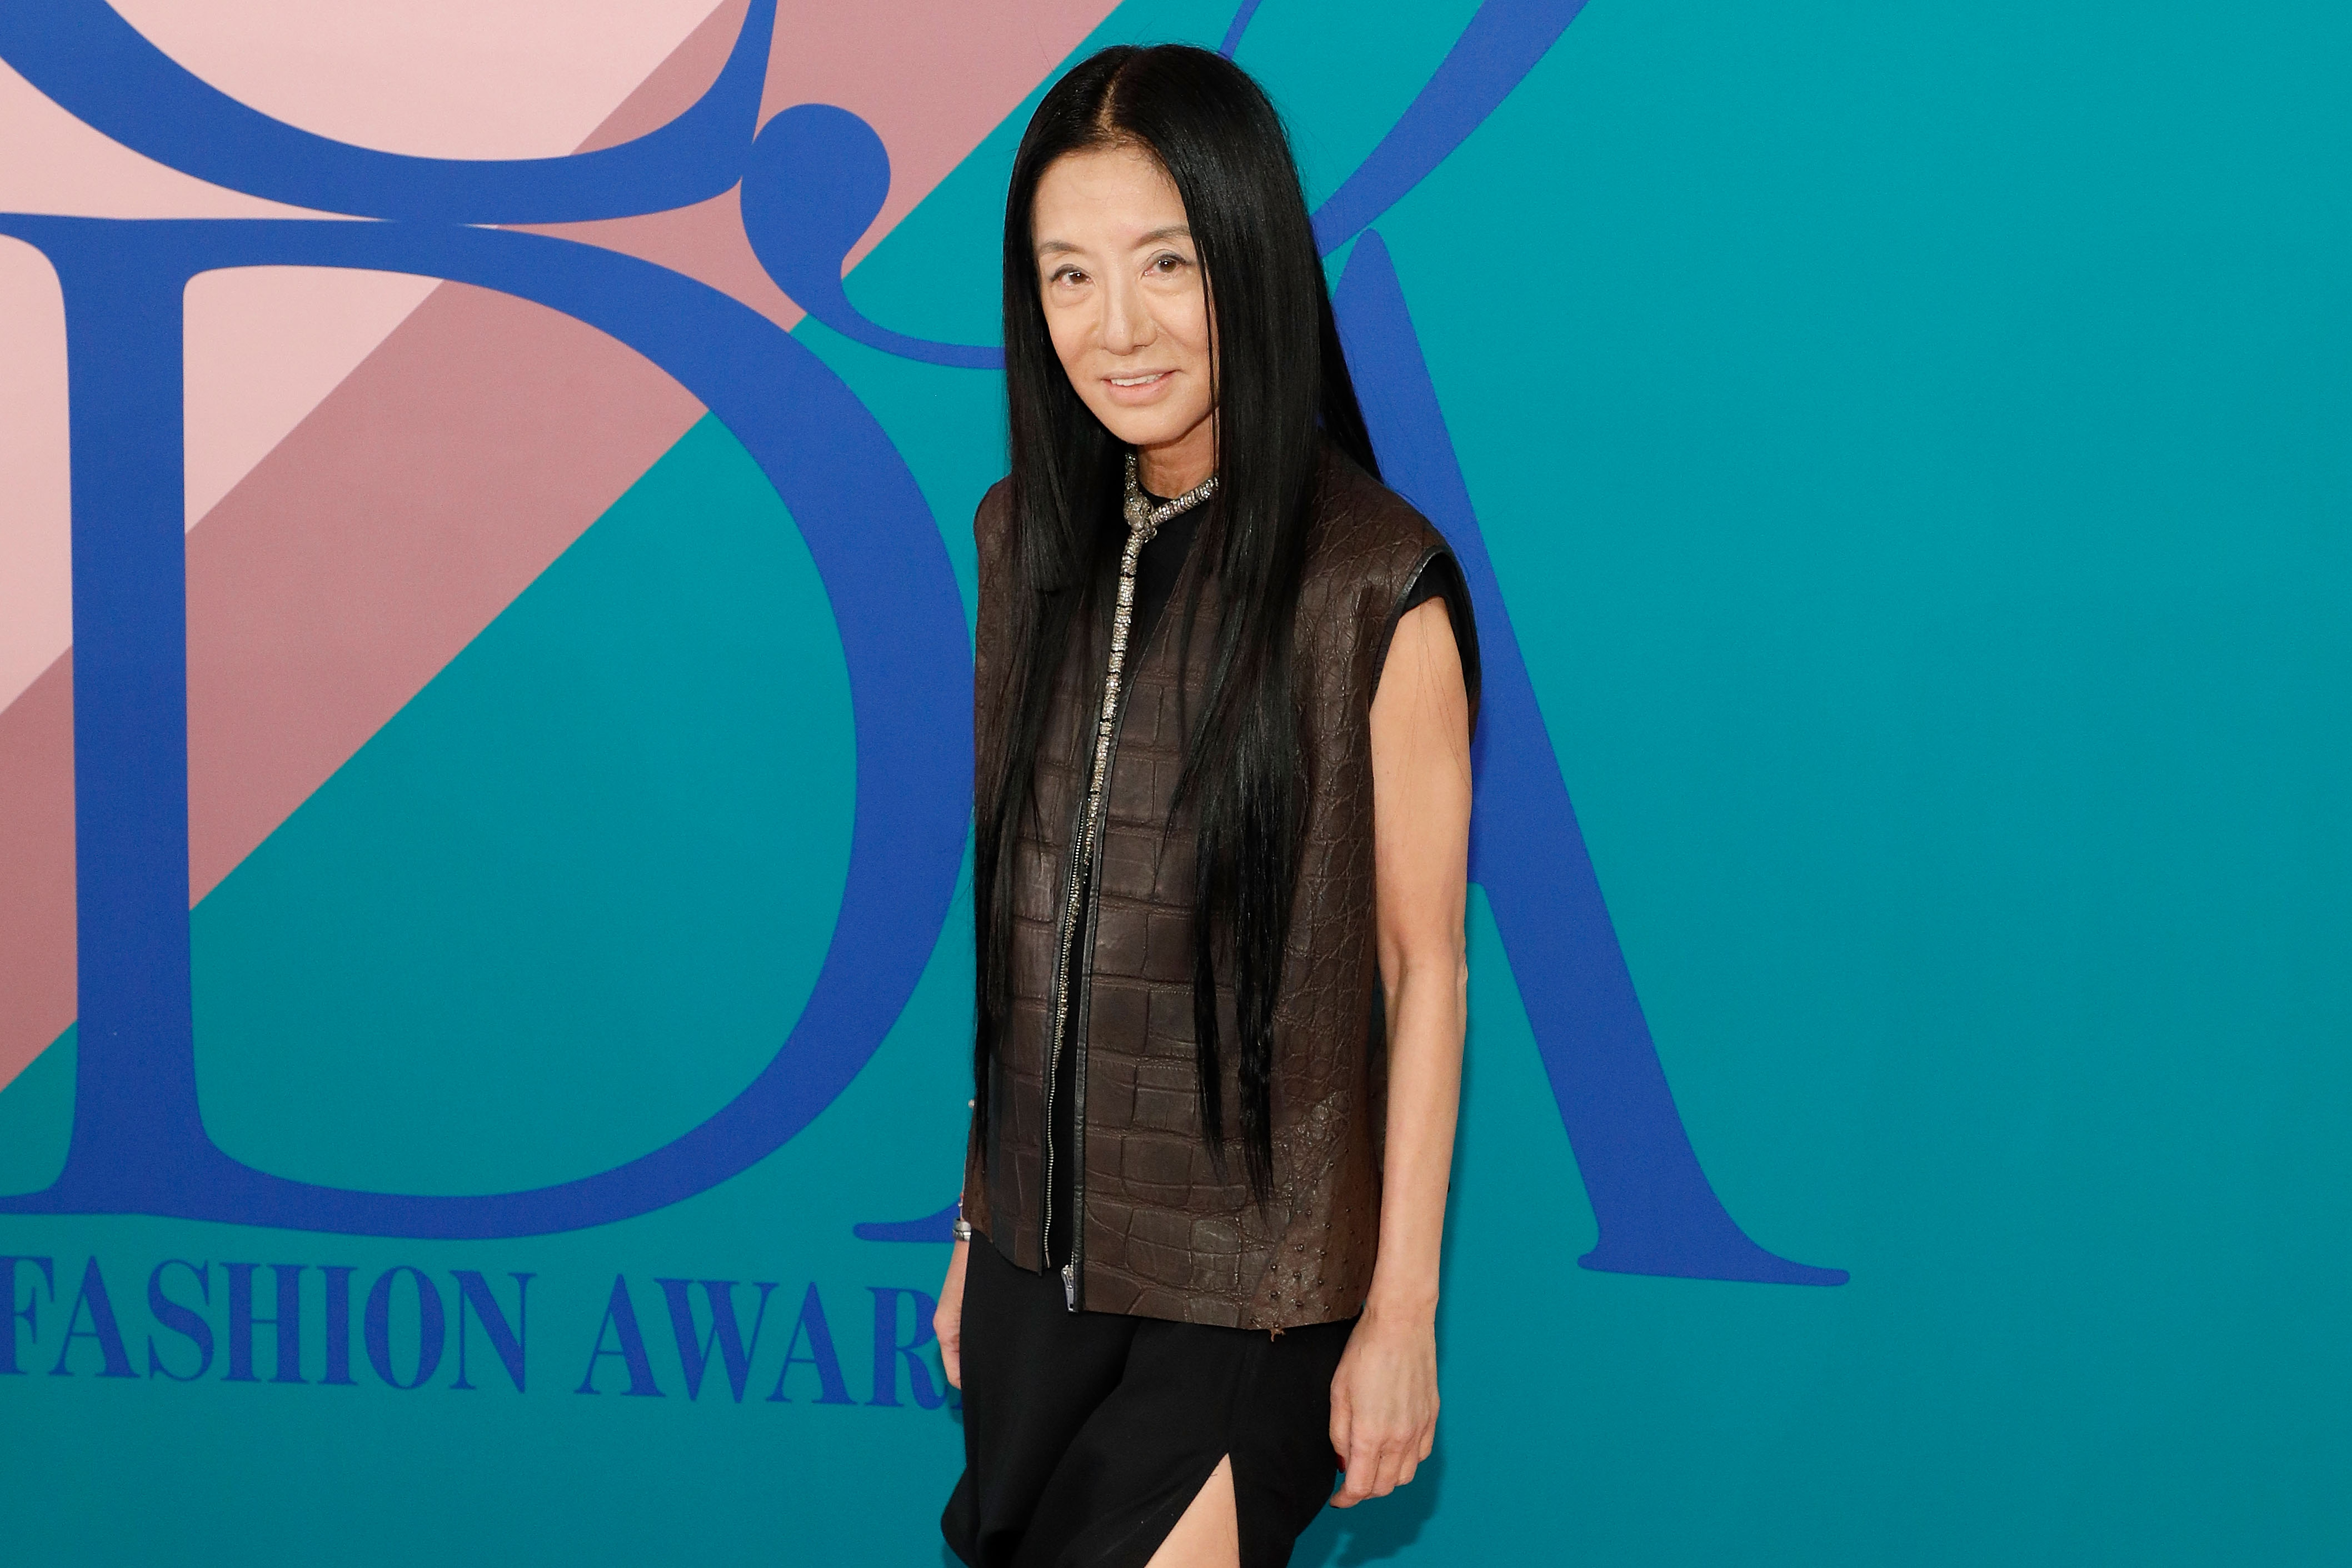 """Vera Wang says she was """"shocked"""" by the social media reaction to an Instagram photo she posted in May. (Photo by Taylor Hill/FilmMagic)"""